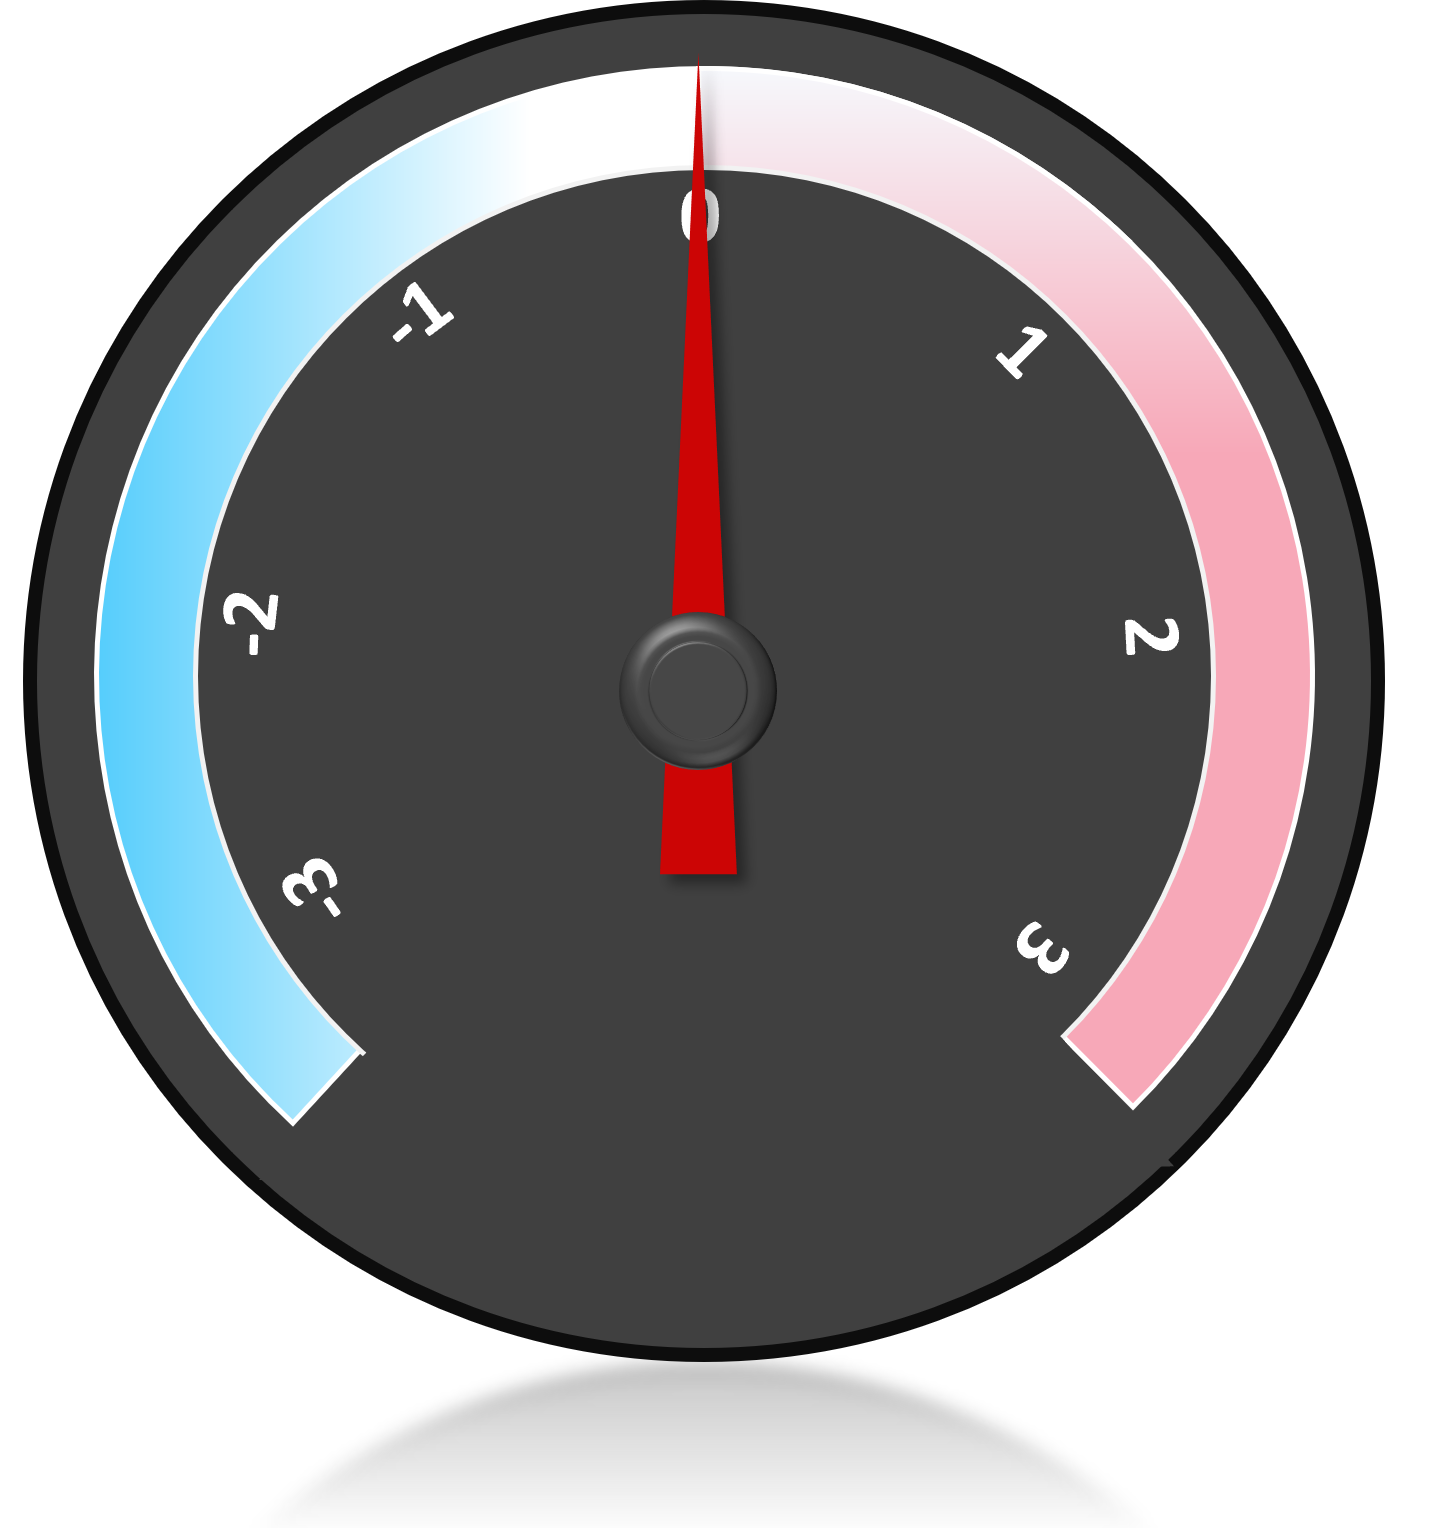 A circular dial with scale -3 to +3, grey background, red pointer vertical on 0. Dial colour pale blue shading to pale pink